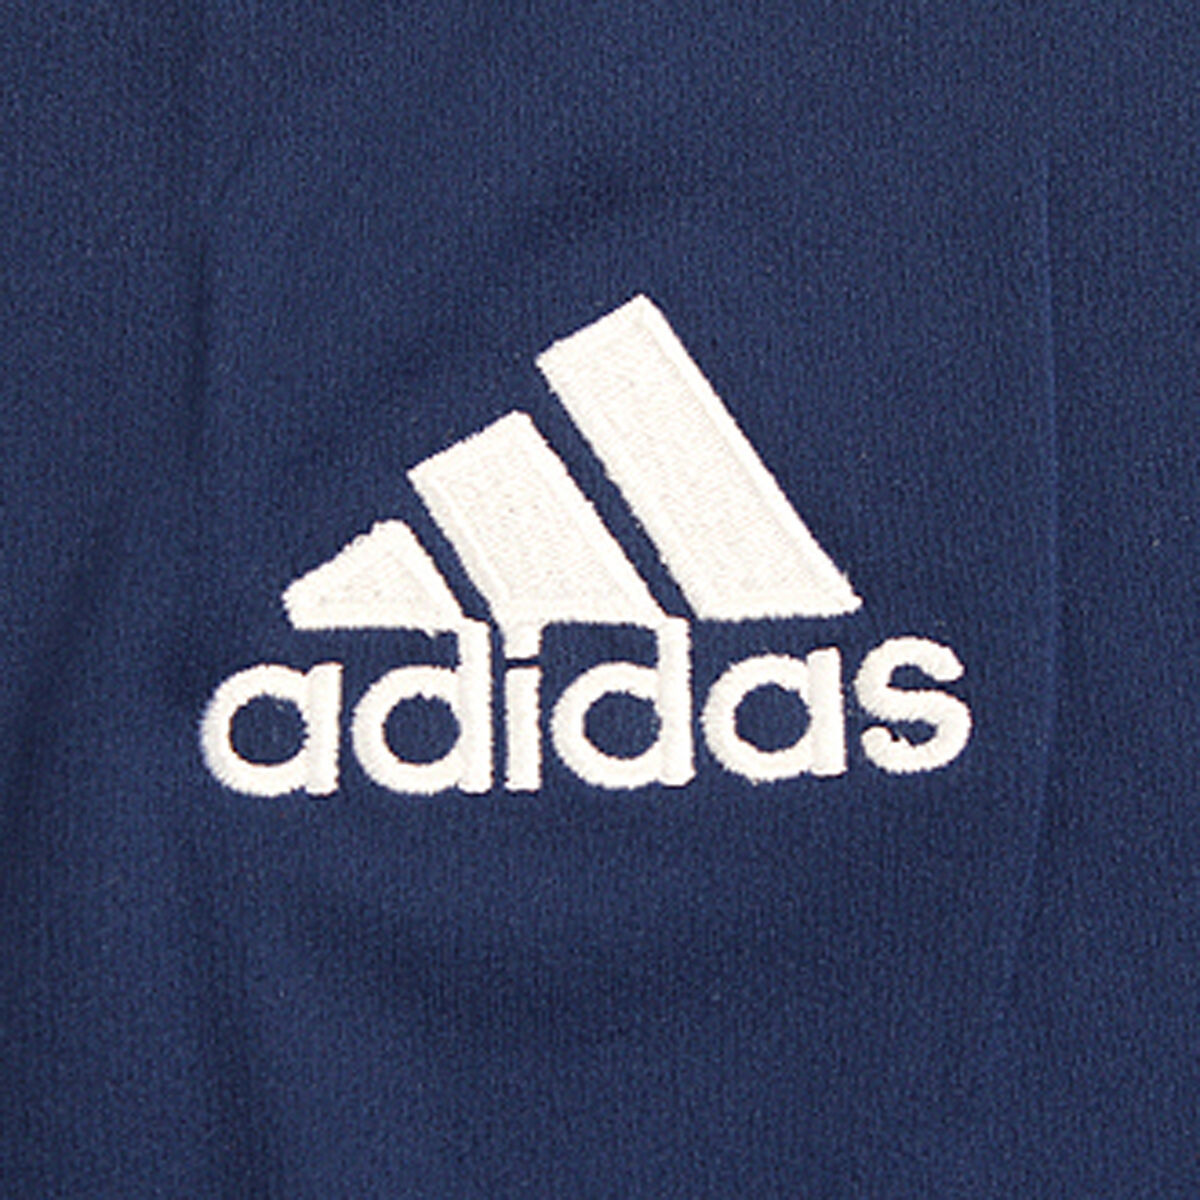 Details about Adidas Estro 15 Top Adidas Training Shirt Short Sleeves Men CLIMALITE show original title